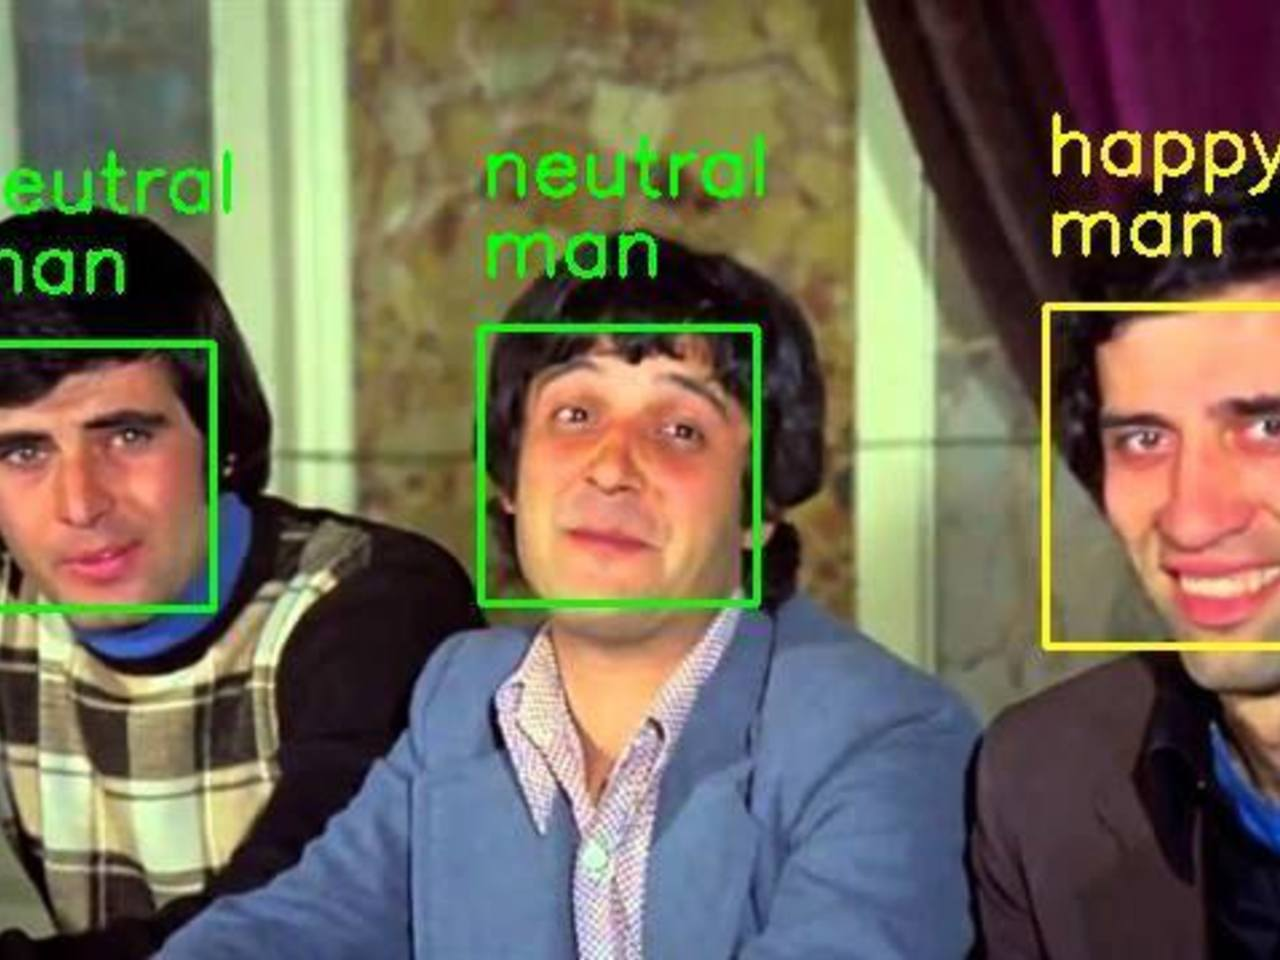 Emotion Recognition from Face Images with Deep Neural Networks